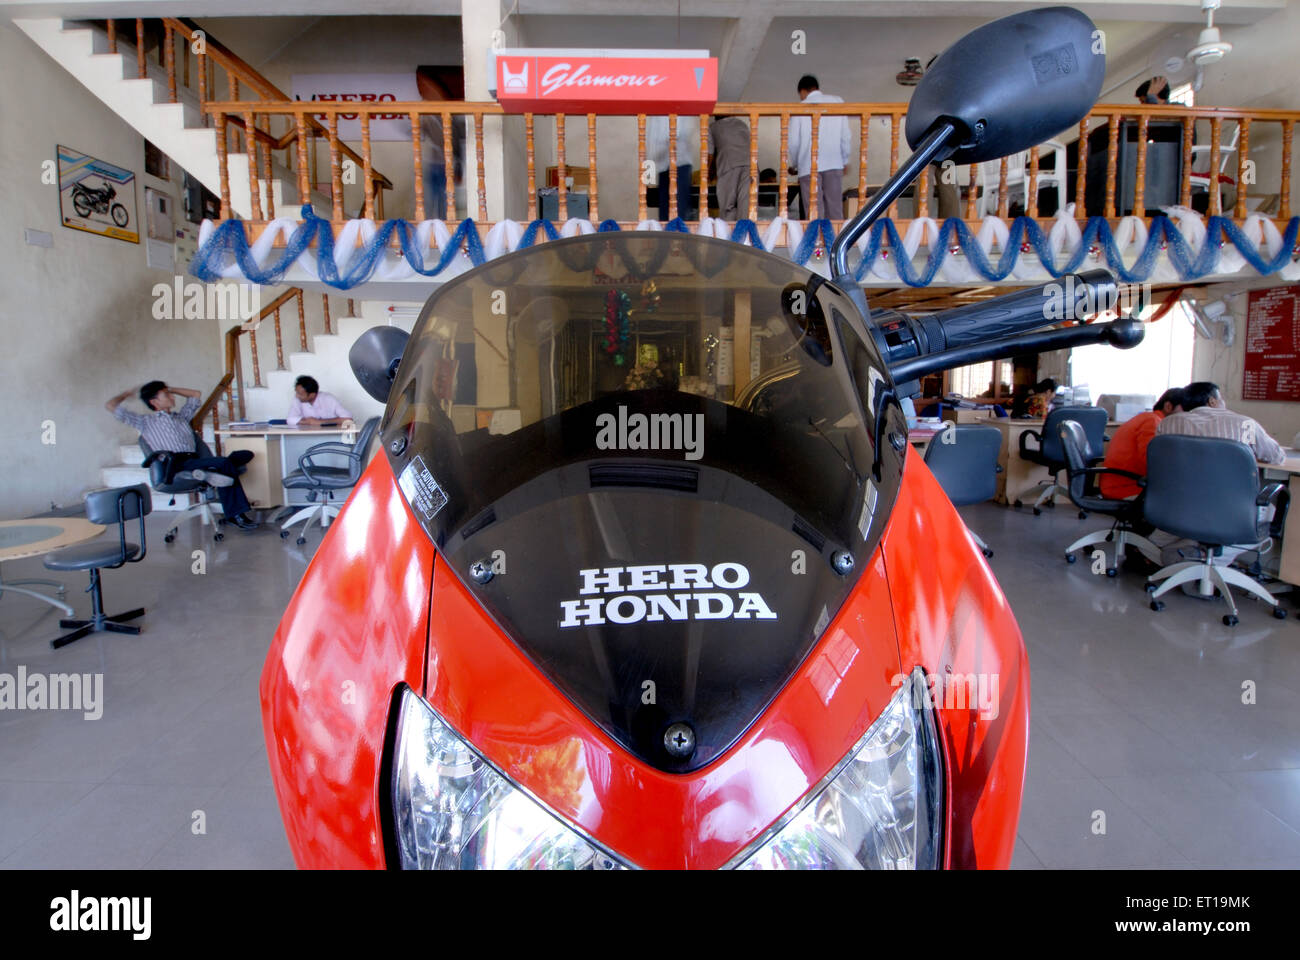 Bike parked in showroom - Stock Image